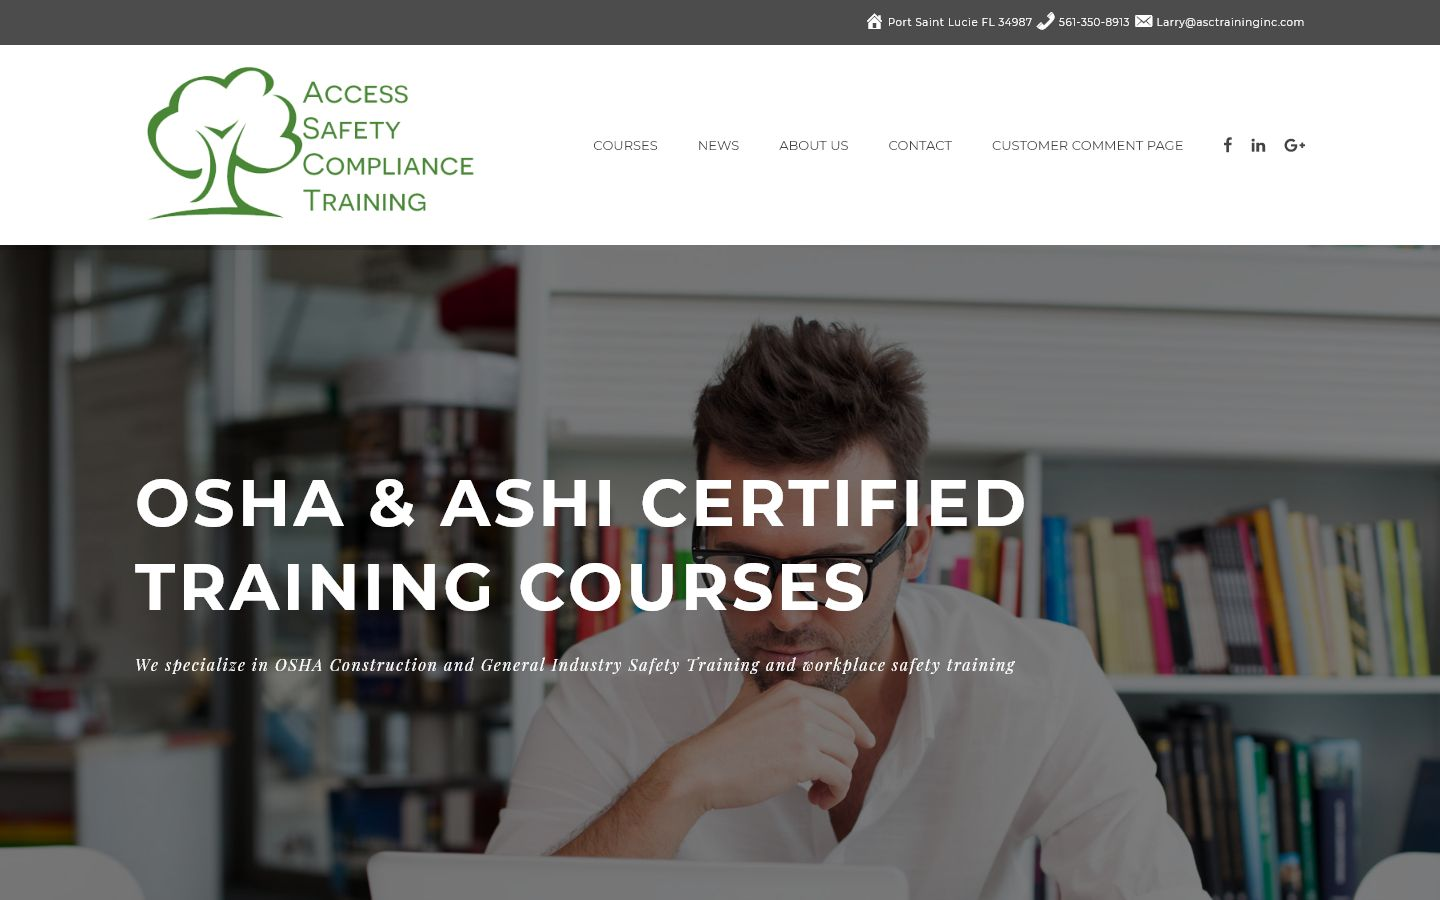 Access safety Compliance Training